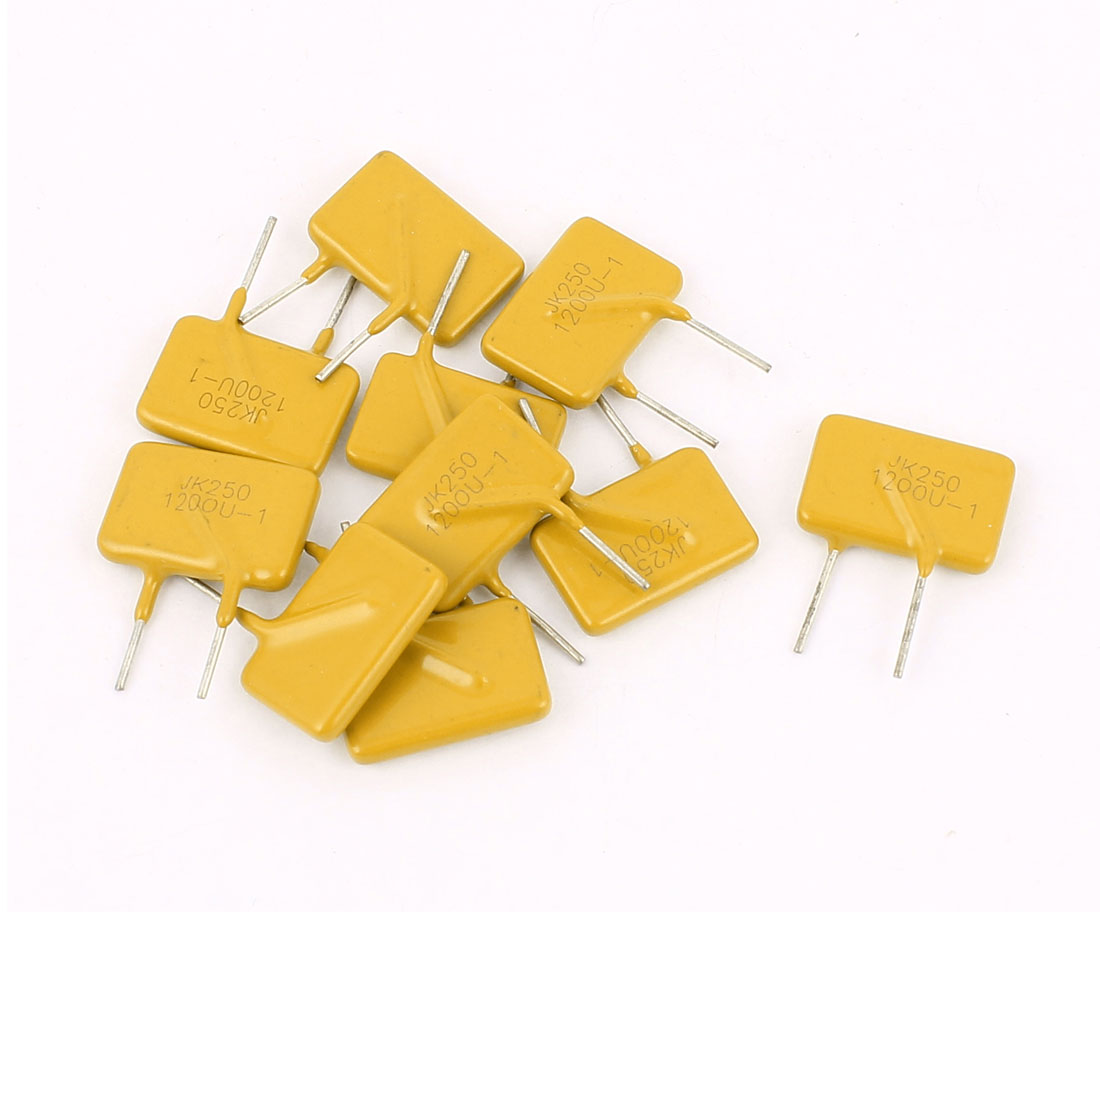 10 Pcs 250V 1.2A Resettable Fuse Radial Through Hole PPTC Polyswitch